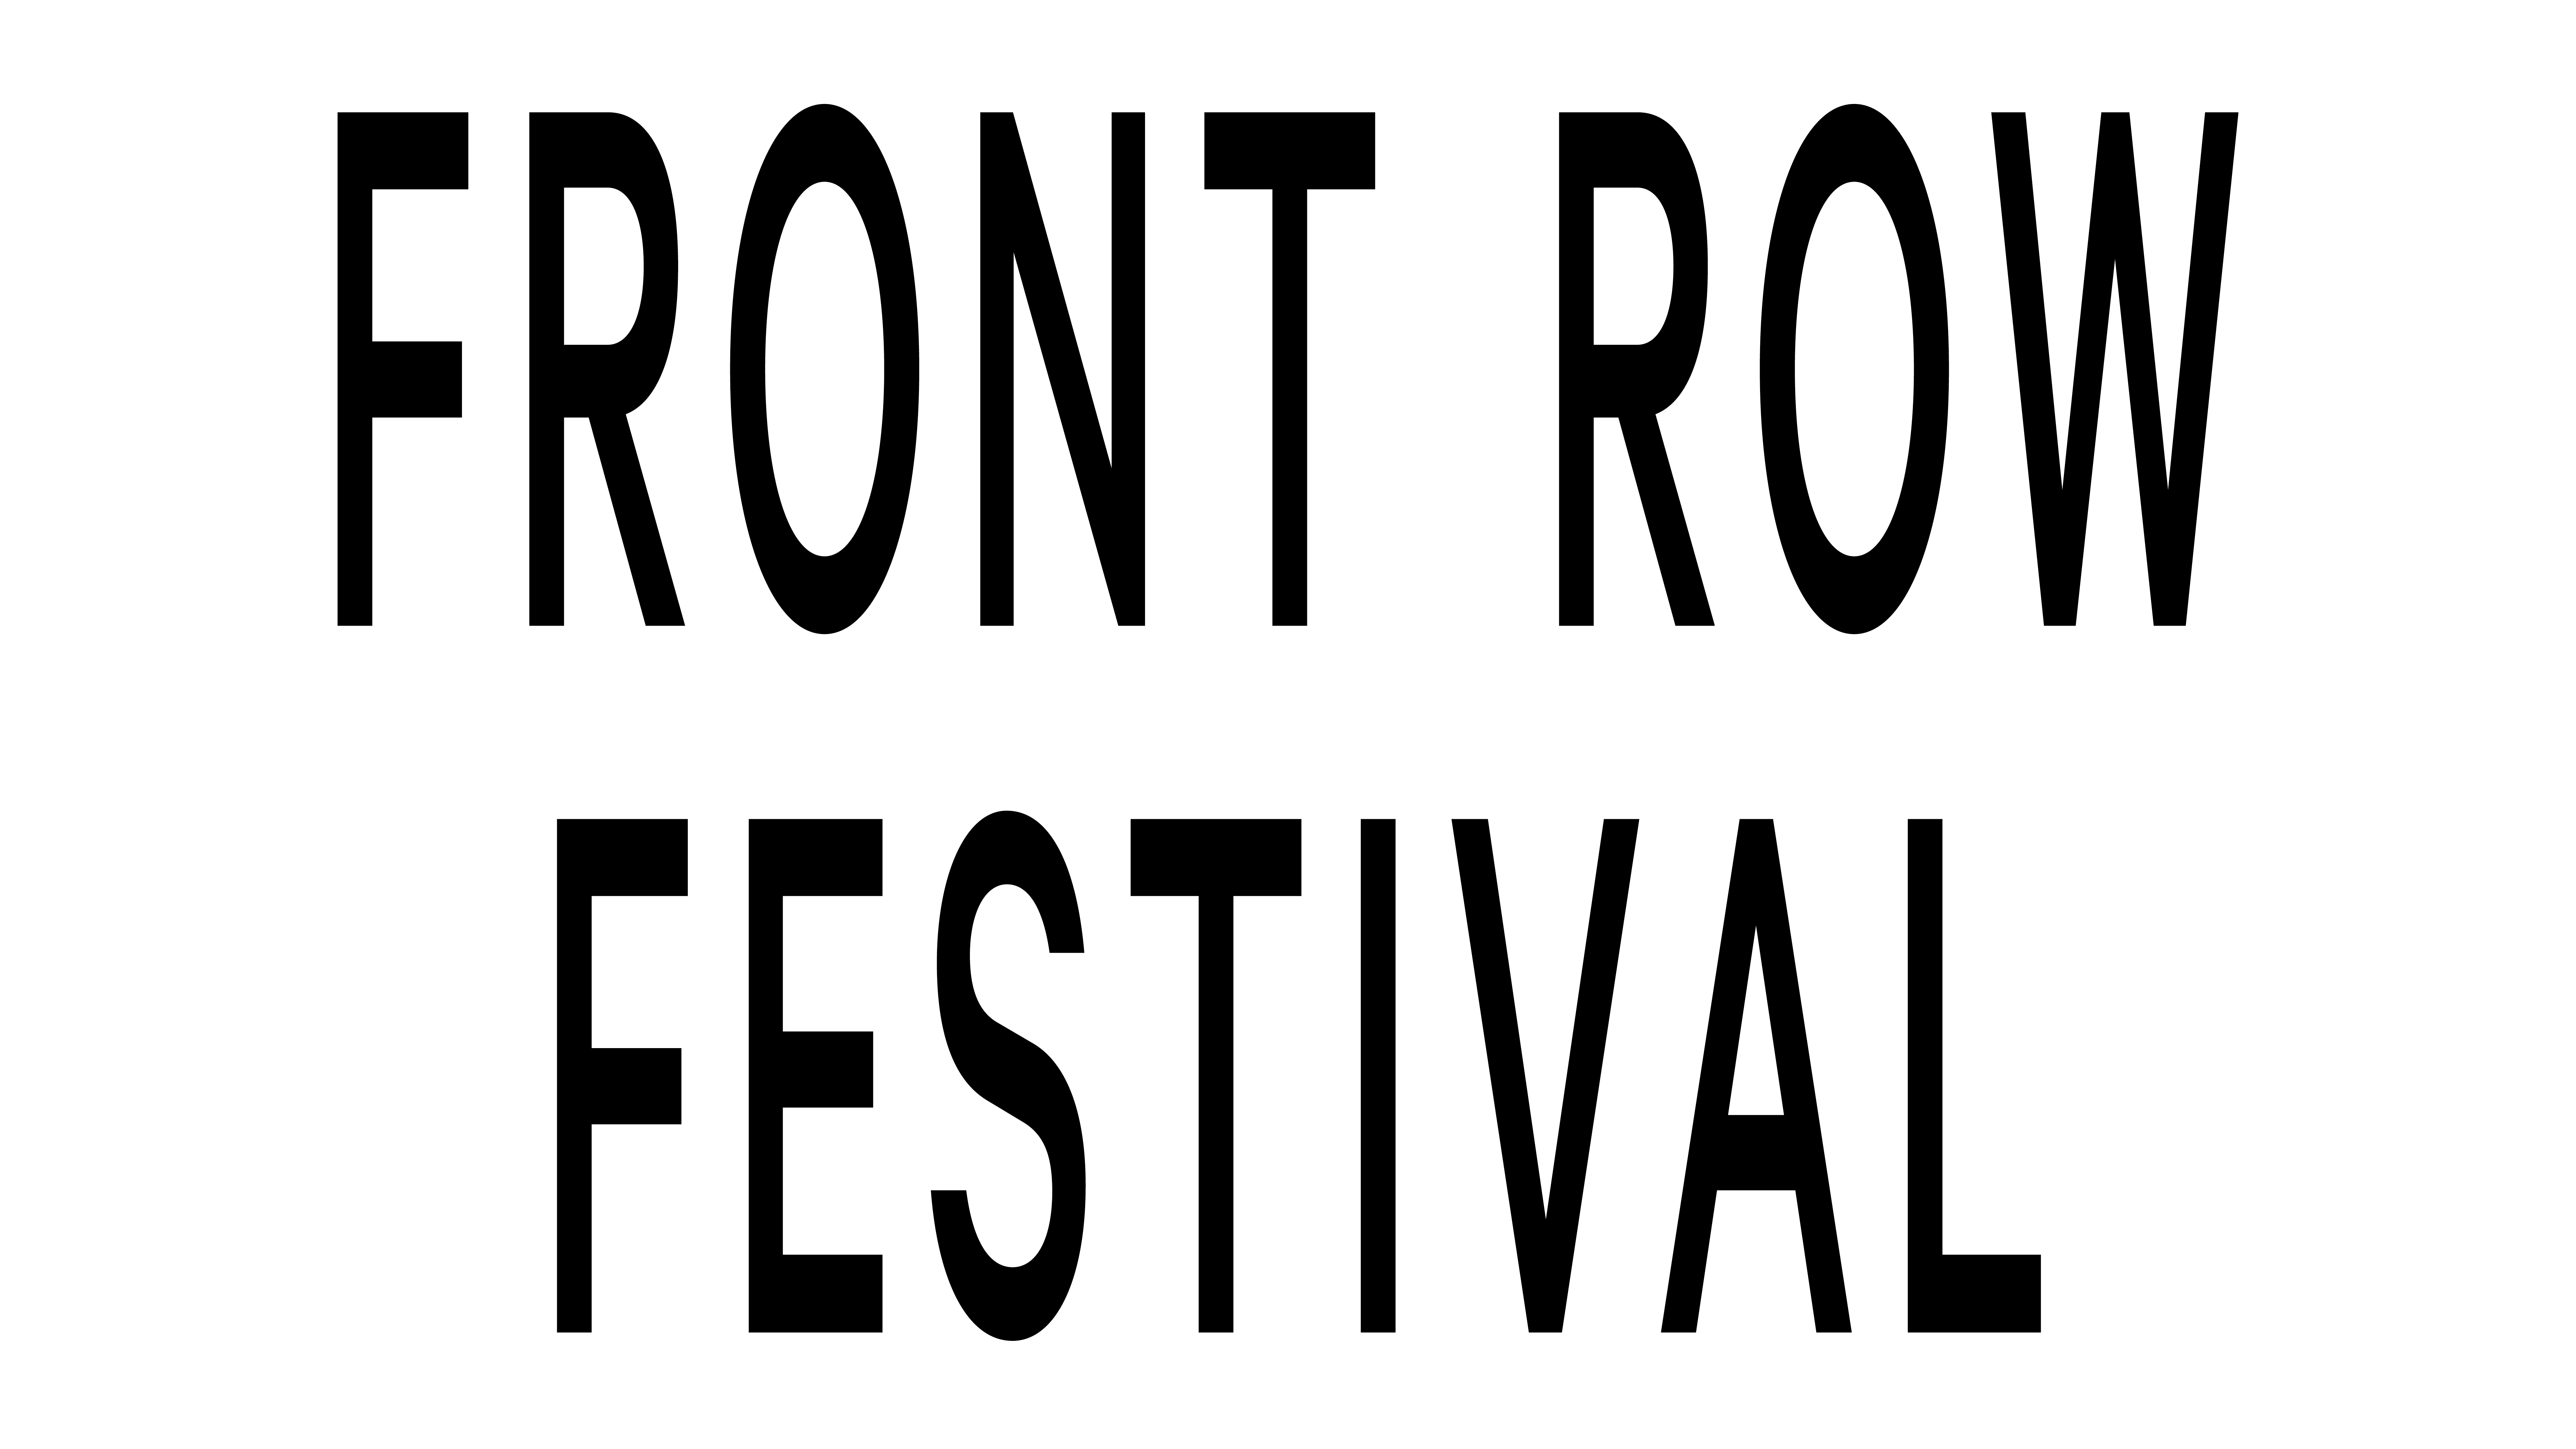 Front Row Festival